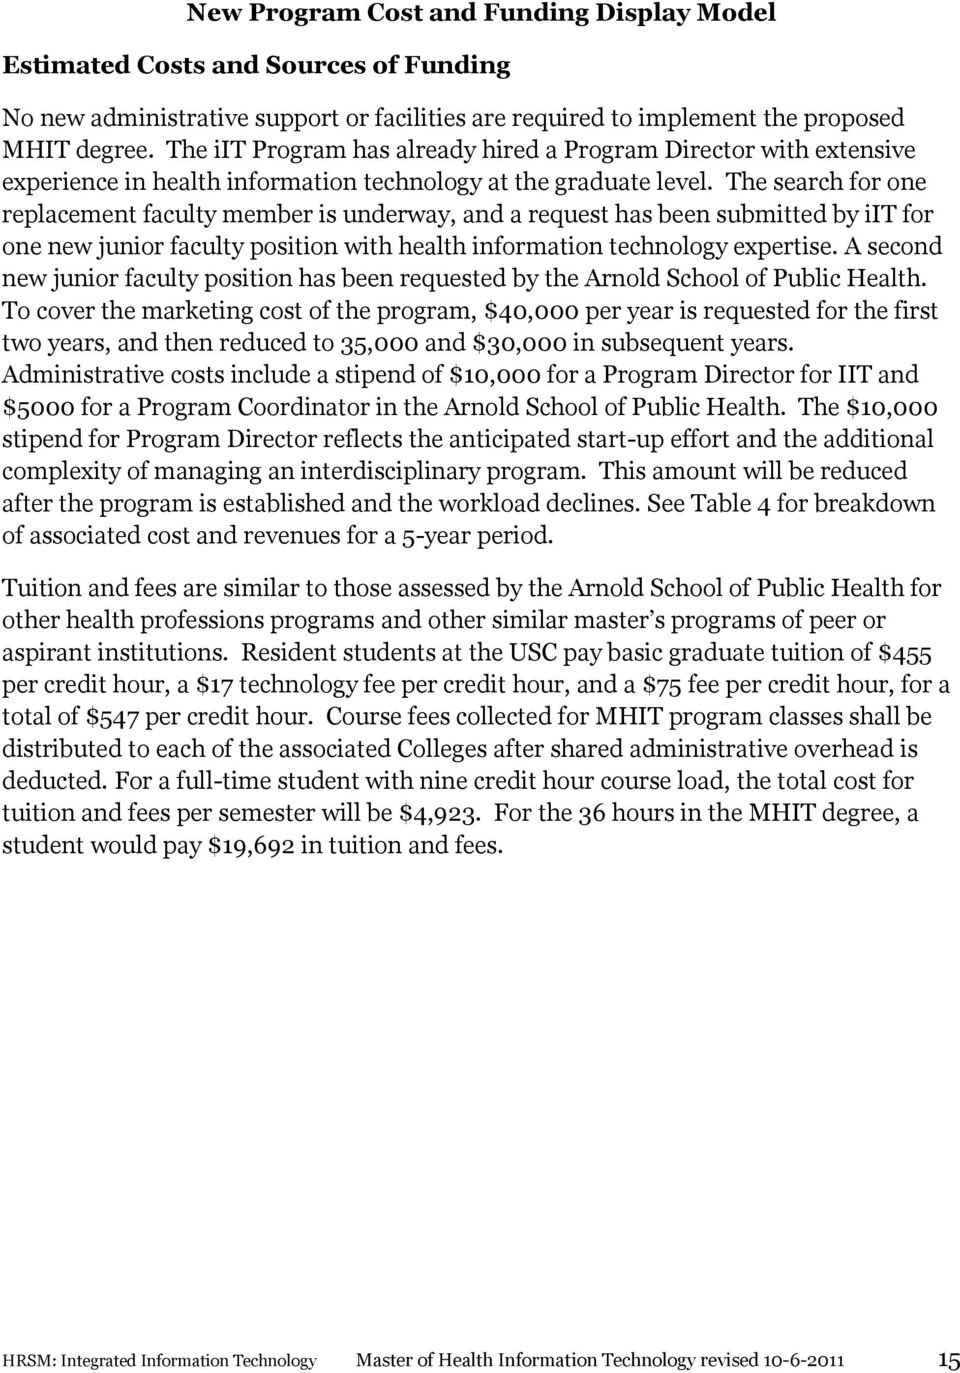 The search for one replacement faculty member is underway, and a request has been submitted by iit for one new junior faculty position with health information technology expertise.